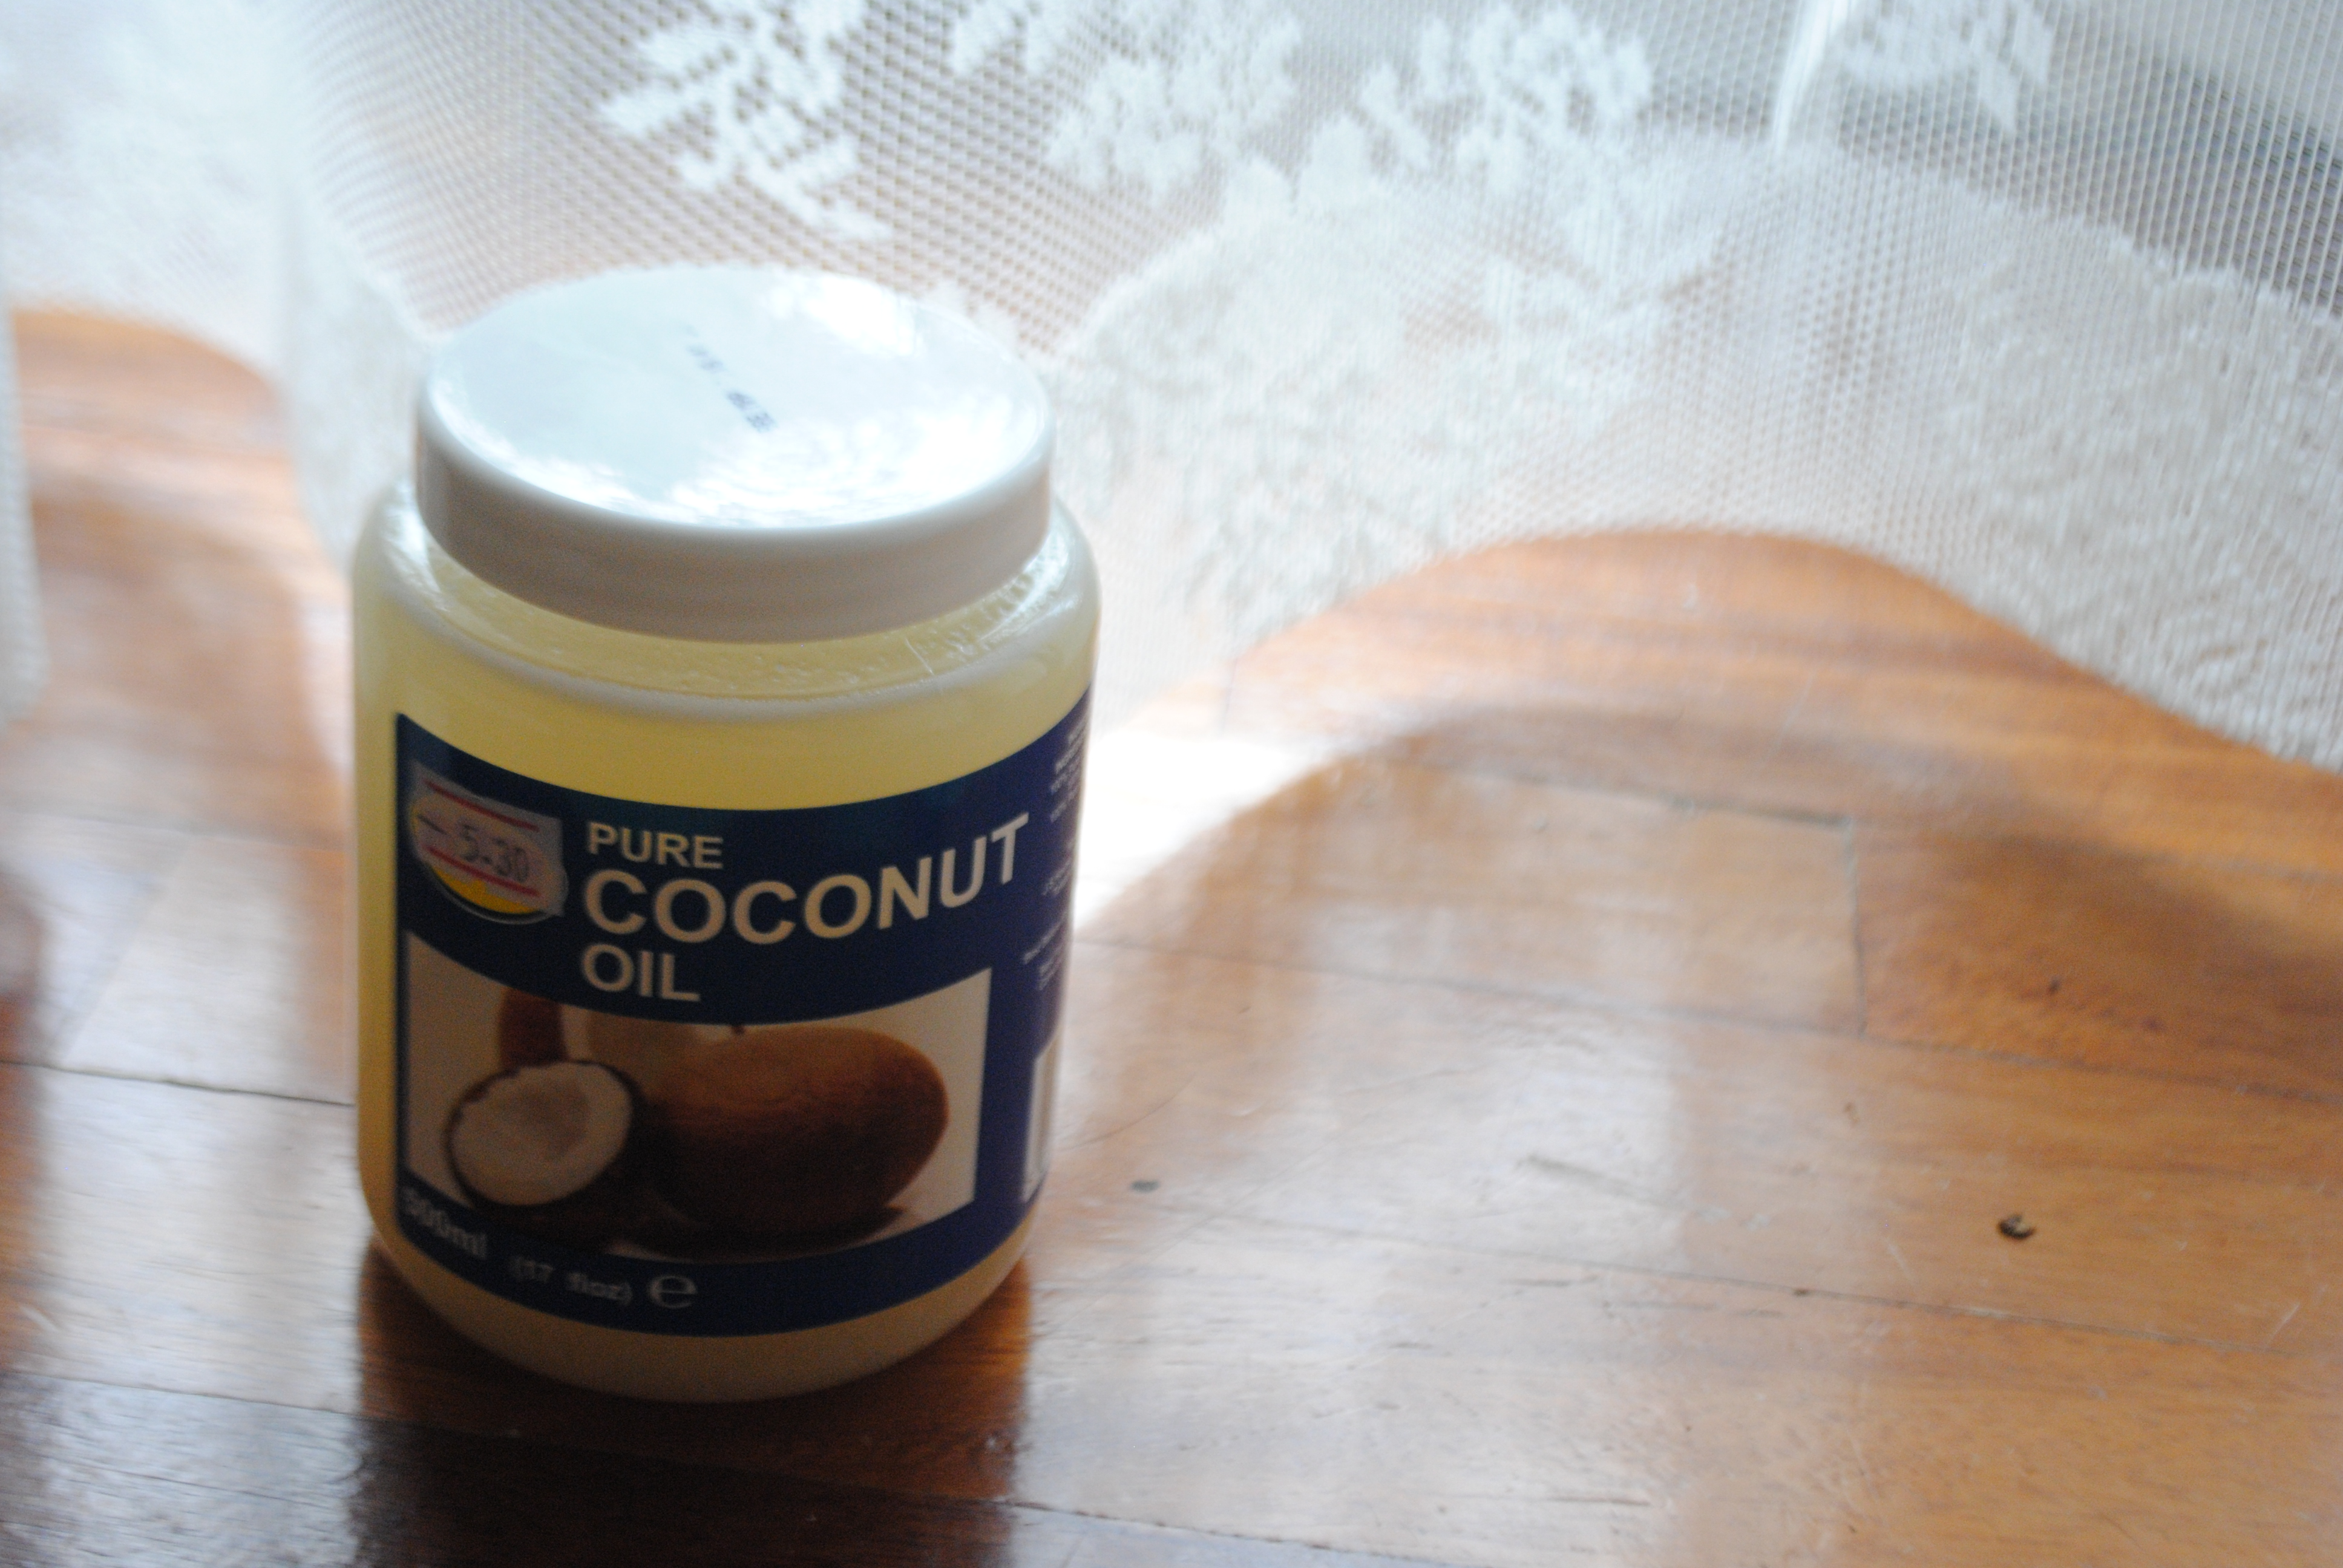 Dove comprare l\'olio di cocco ECONOMICO? / Where do I buy LOW-COST ...